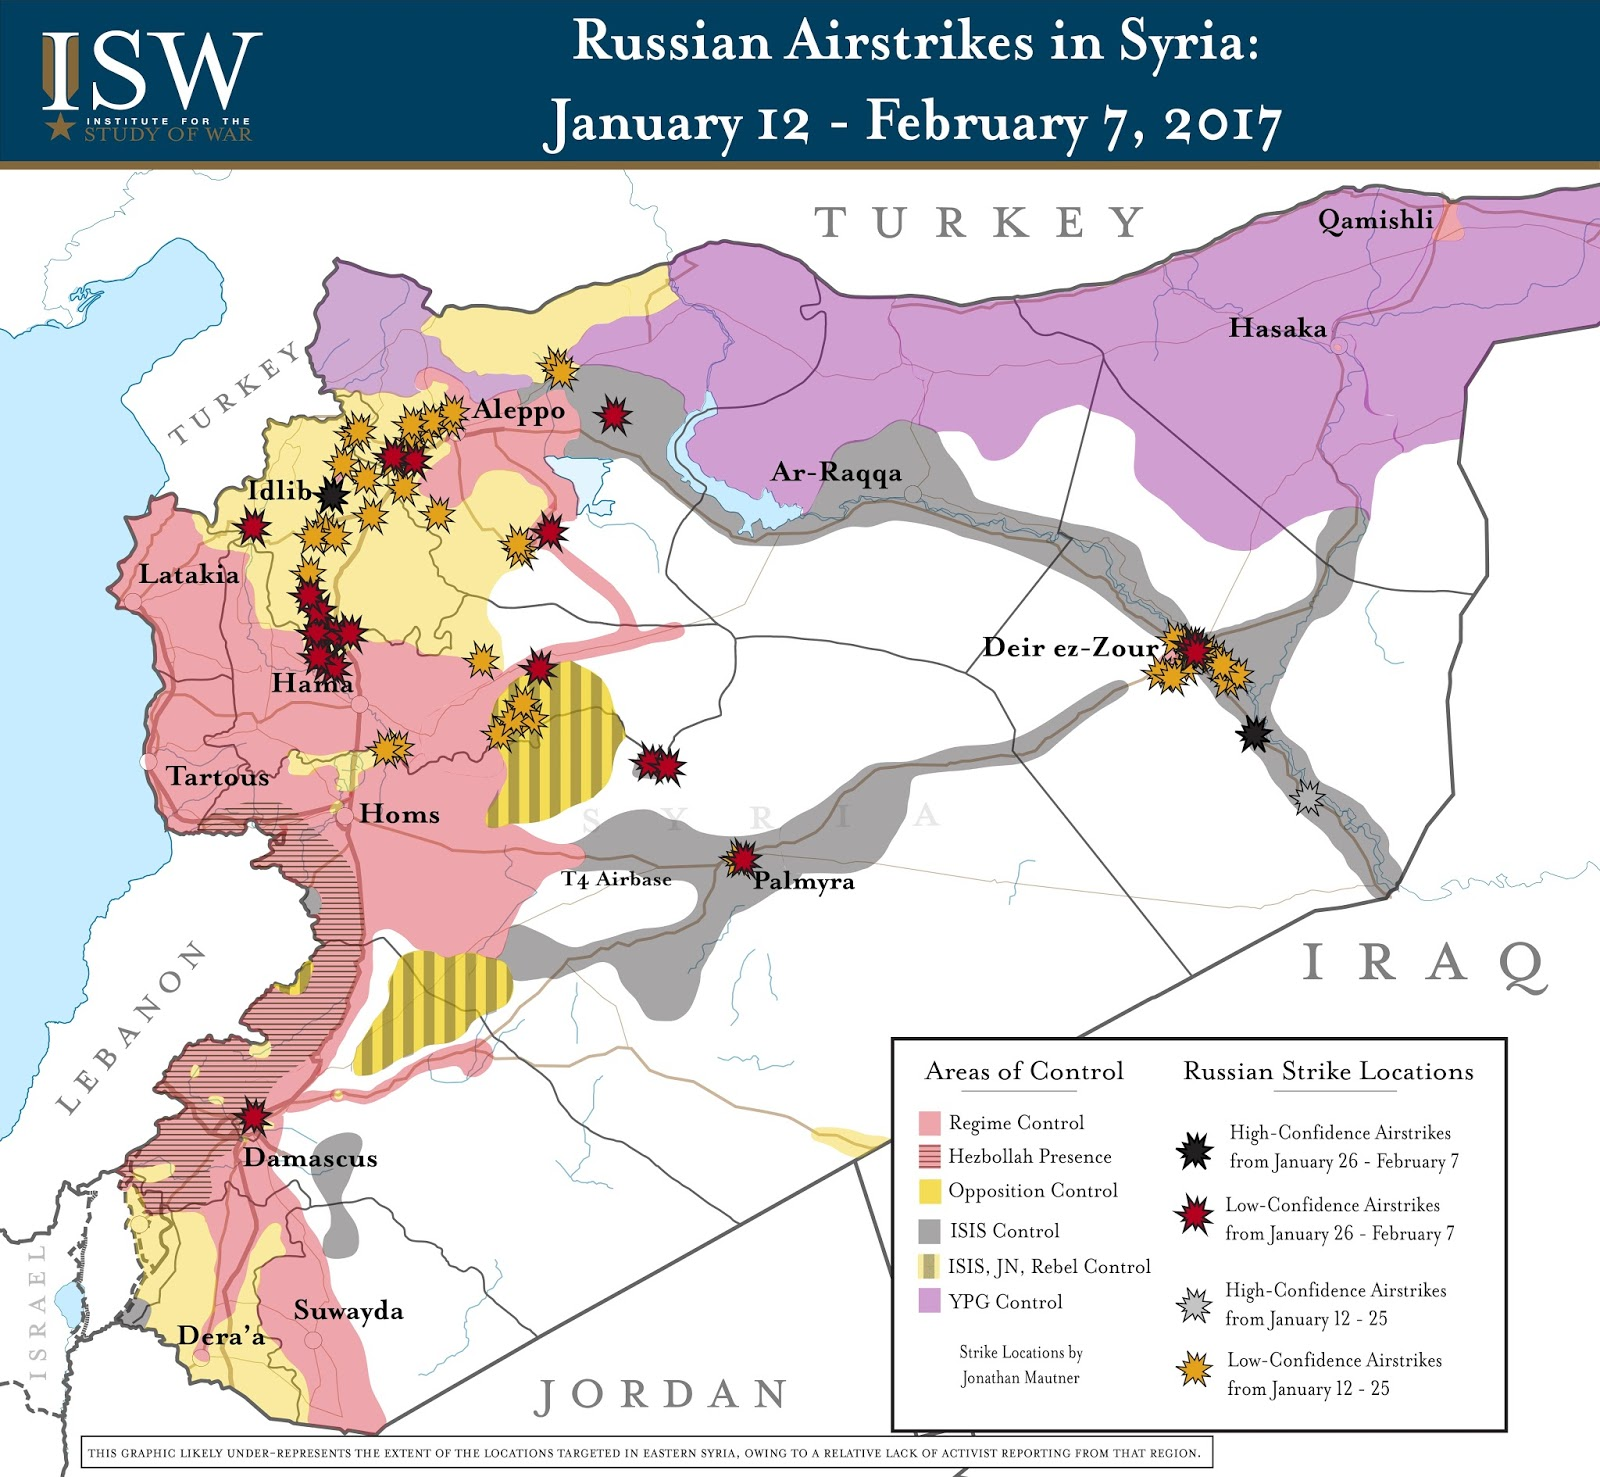 Russian Airstrikes in Syria: January 12 – February 7, 2017